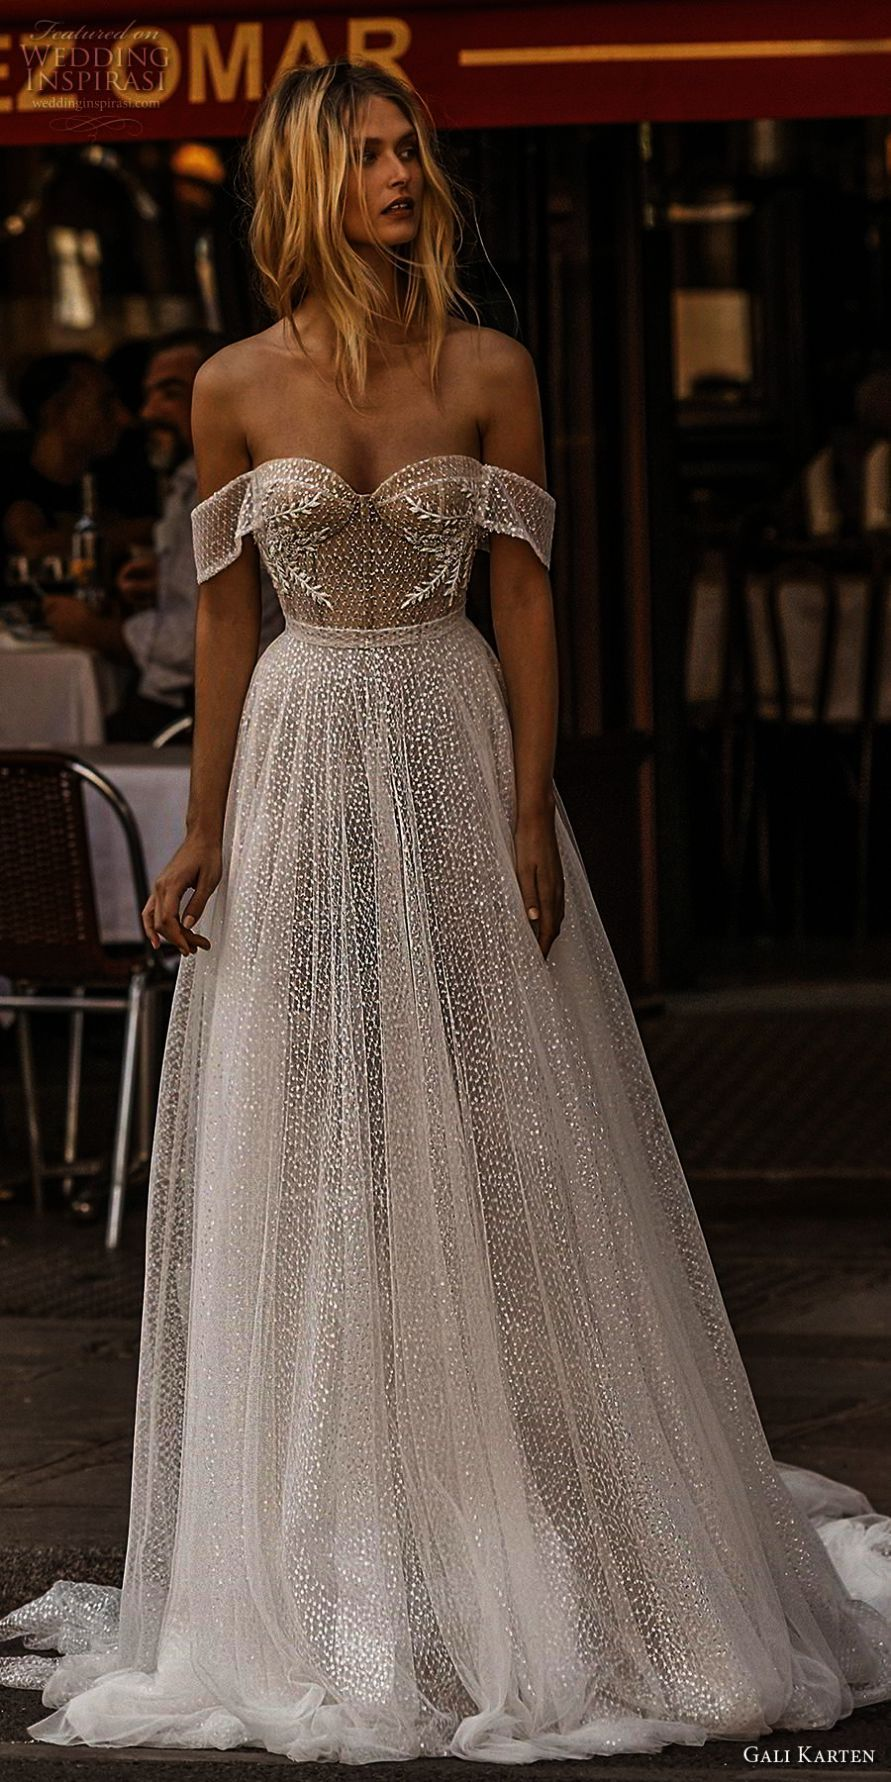 Wedding Wishes Cooking Lace Top A Line Wedding Dress Amid Lace Wedding Dress Kijiji With Lac Long Train Wedding Dress Princess Wedding Gown Ball Gowns Wedding